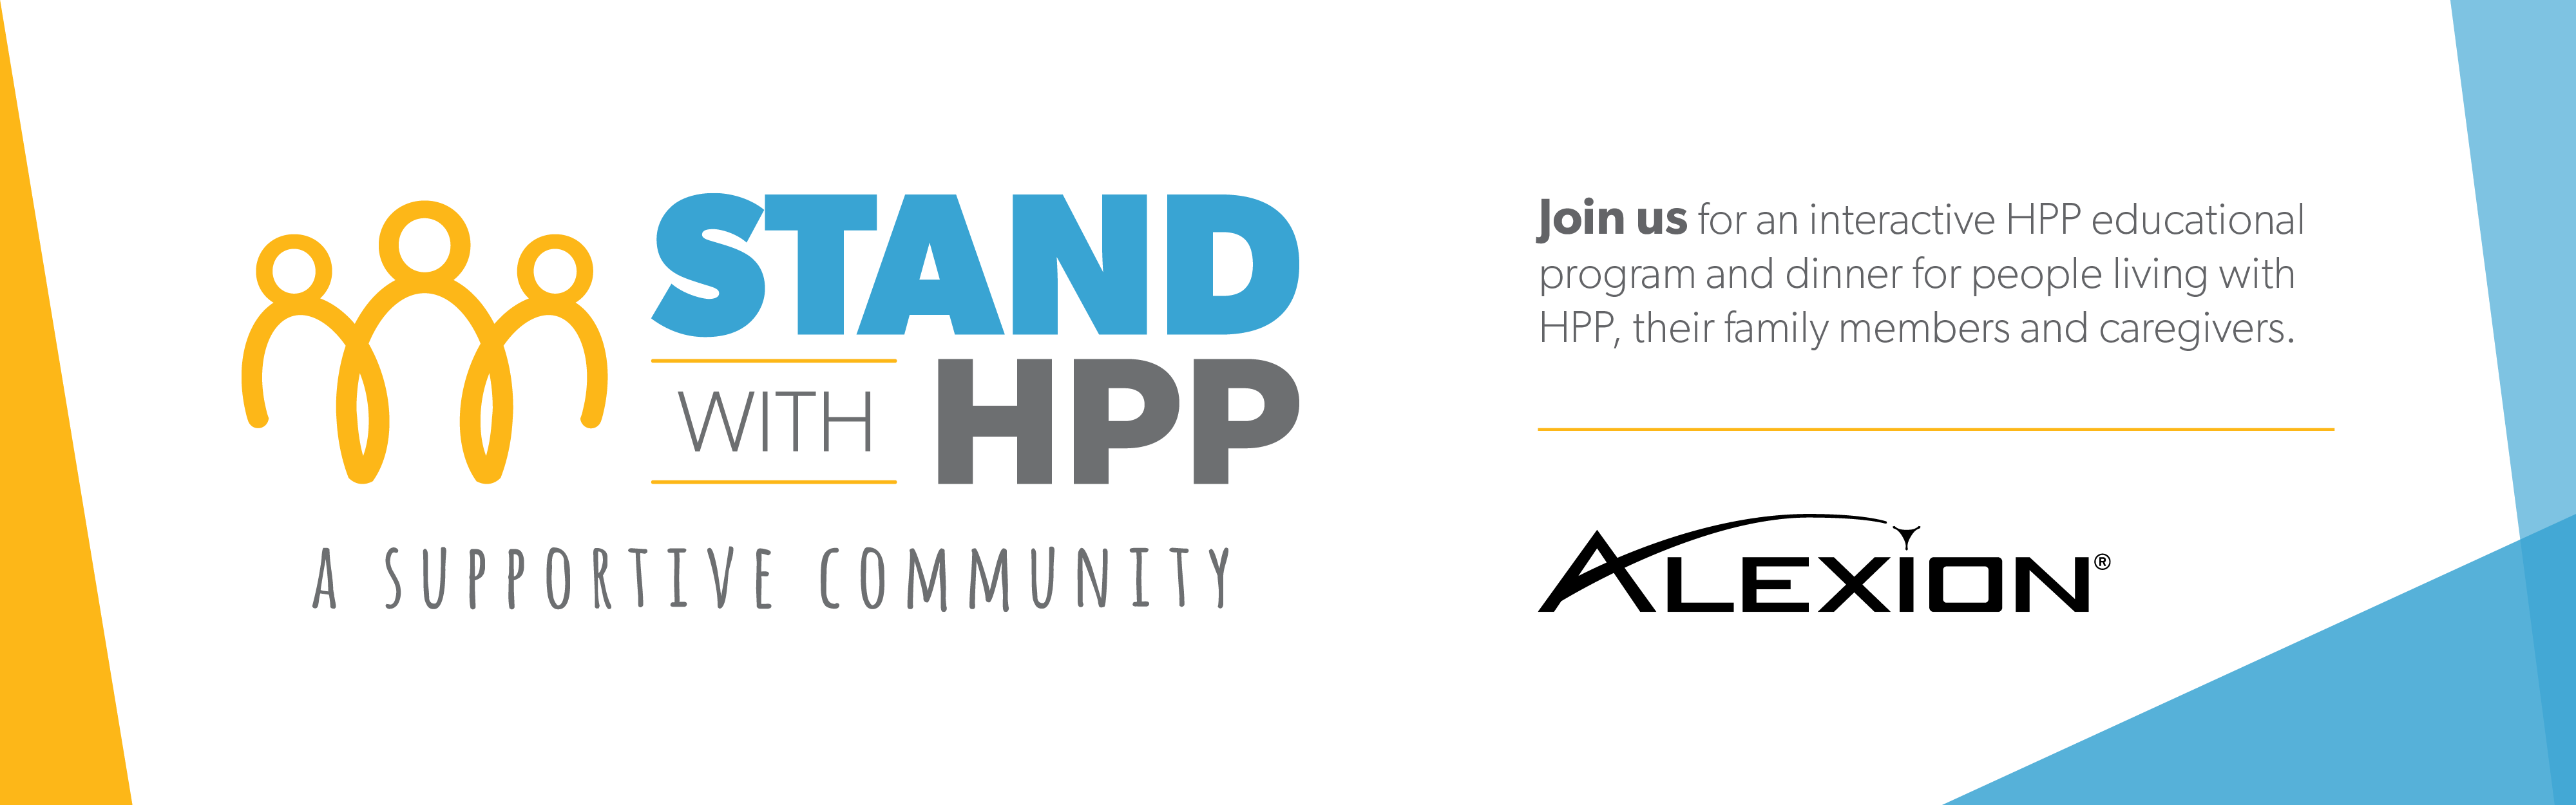 2017 HPP Patient Meeting (Indianapolis, IN)